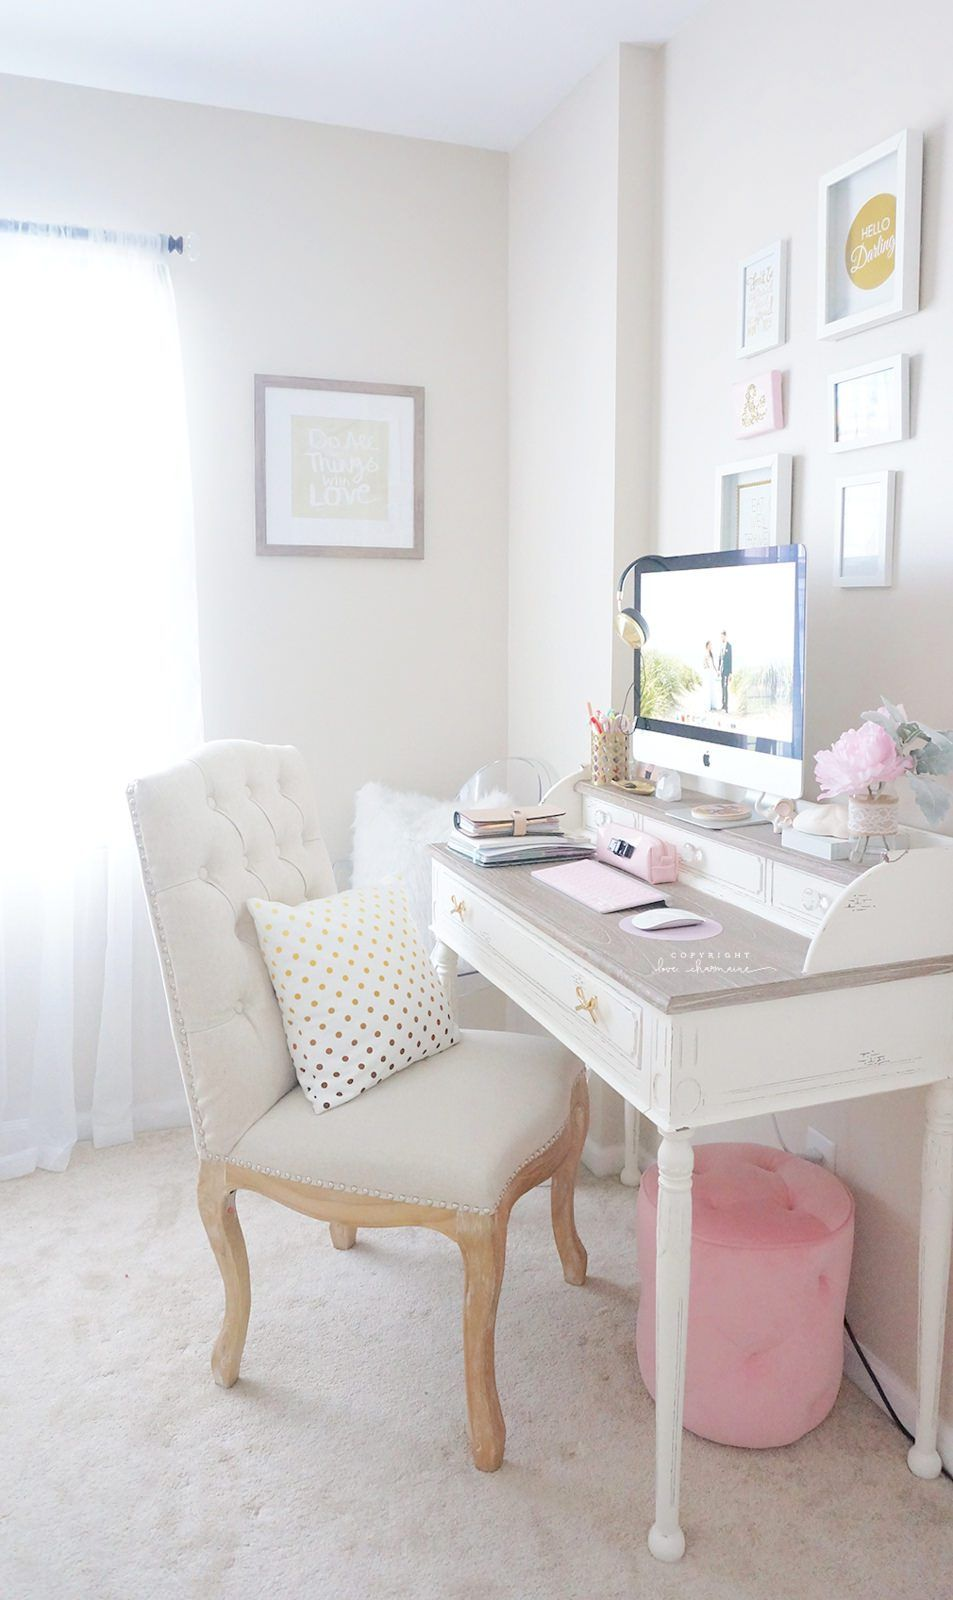 Merveilleux Best Modern 50 Inspiring Home Office Ideas In Just Imagine Waking Up With  Your Pajamas And Starting To Your Work In Next Room. Especially For All The  Stay ...